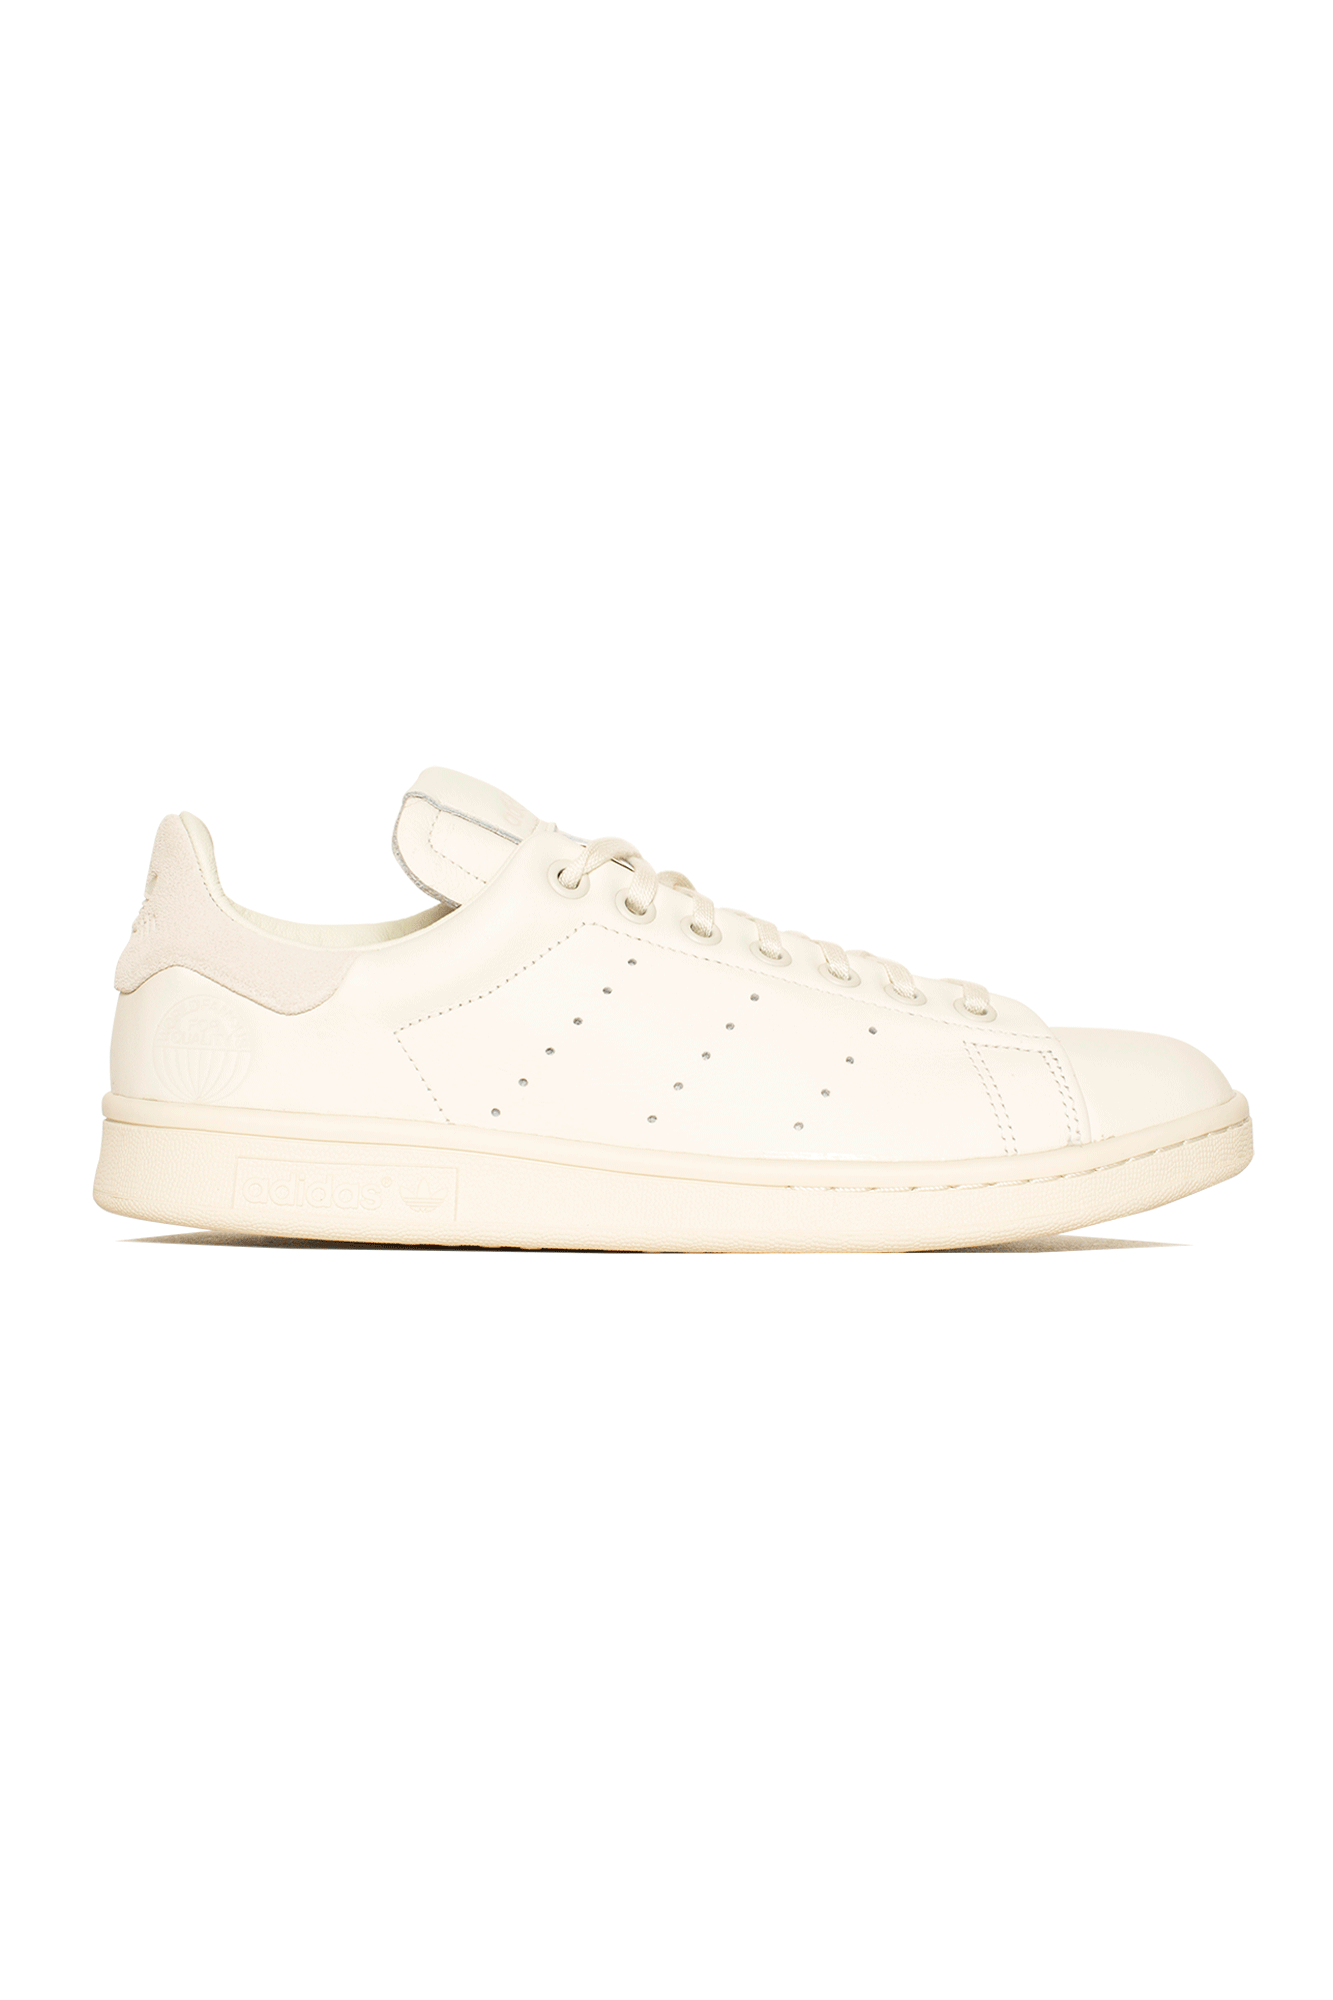 STAN SMITH RECON White